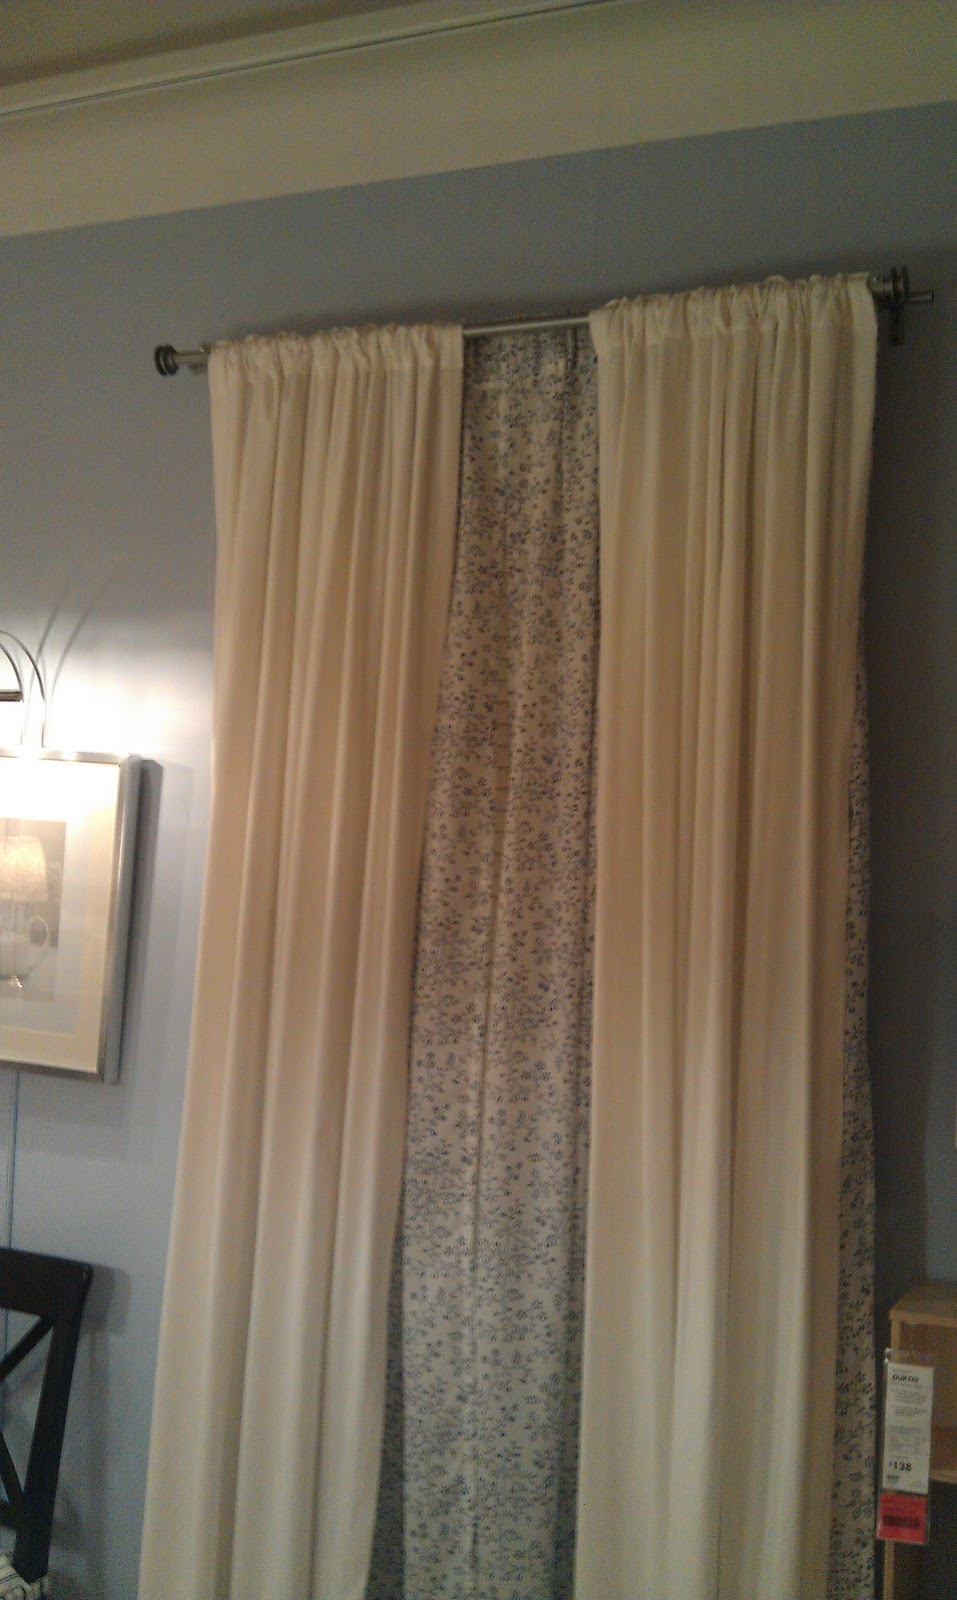 ikea curtains drapes 28 images ikea sanela velvet drapes curtains 2 panels 98 quot long all. Black Bedroom Furniture Sets. Home Design Ideas